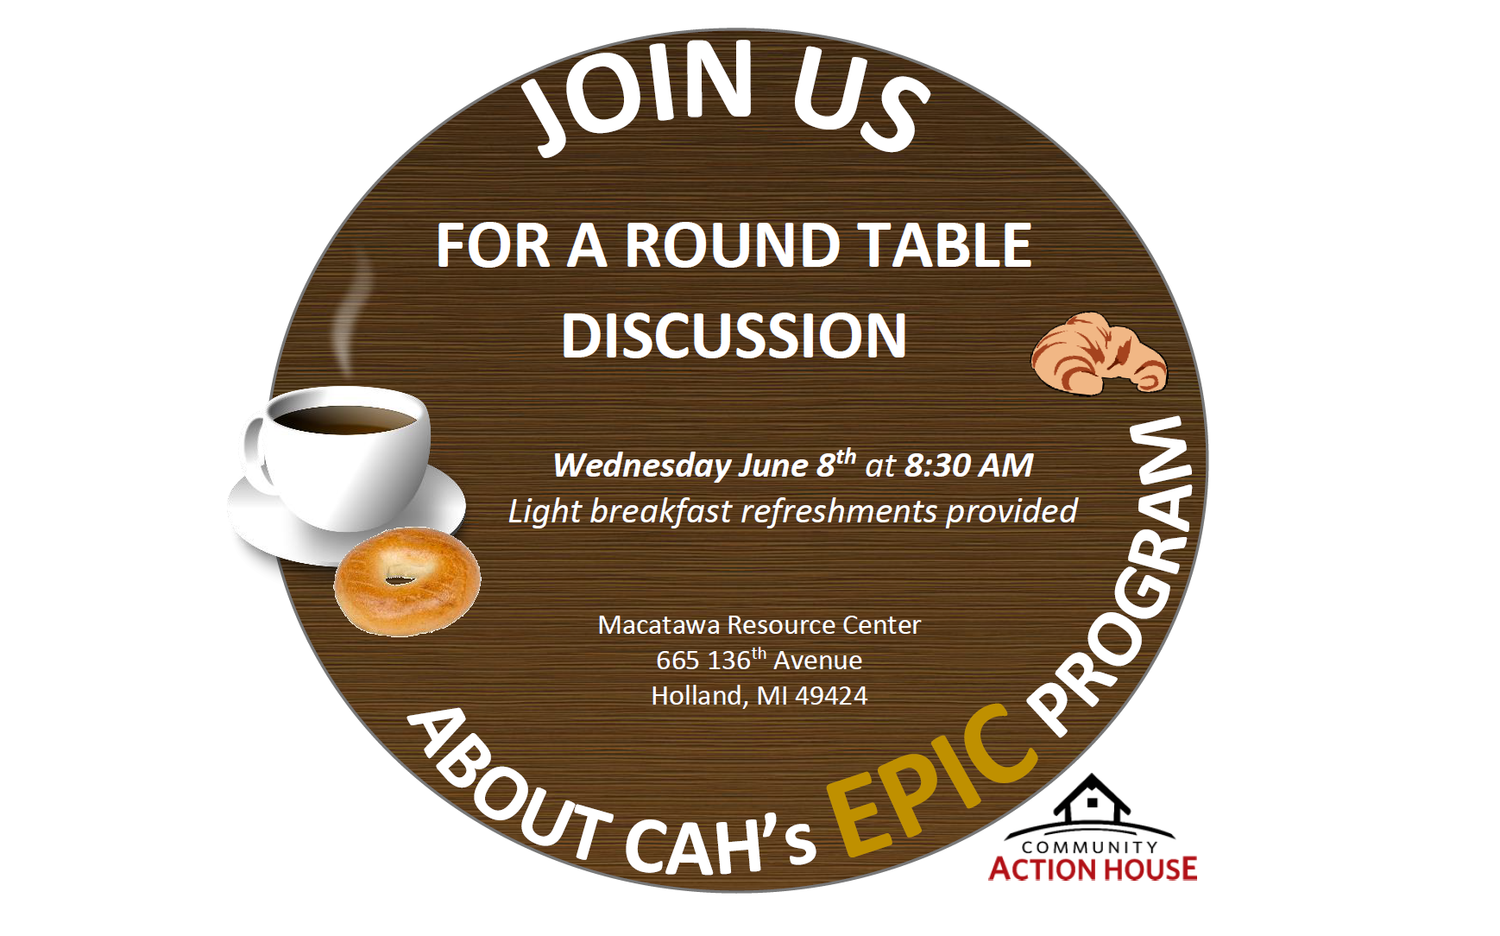 Join us for an epic round table discussion community action house join us for an epic round table discussion stopboris Choice Image